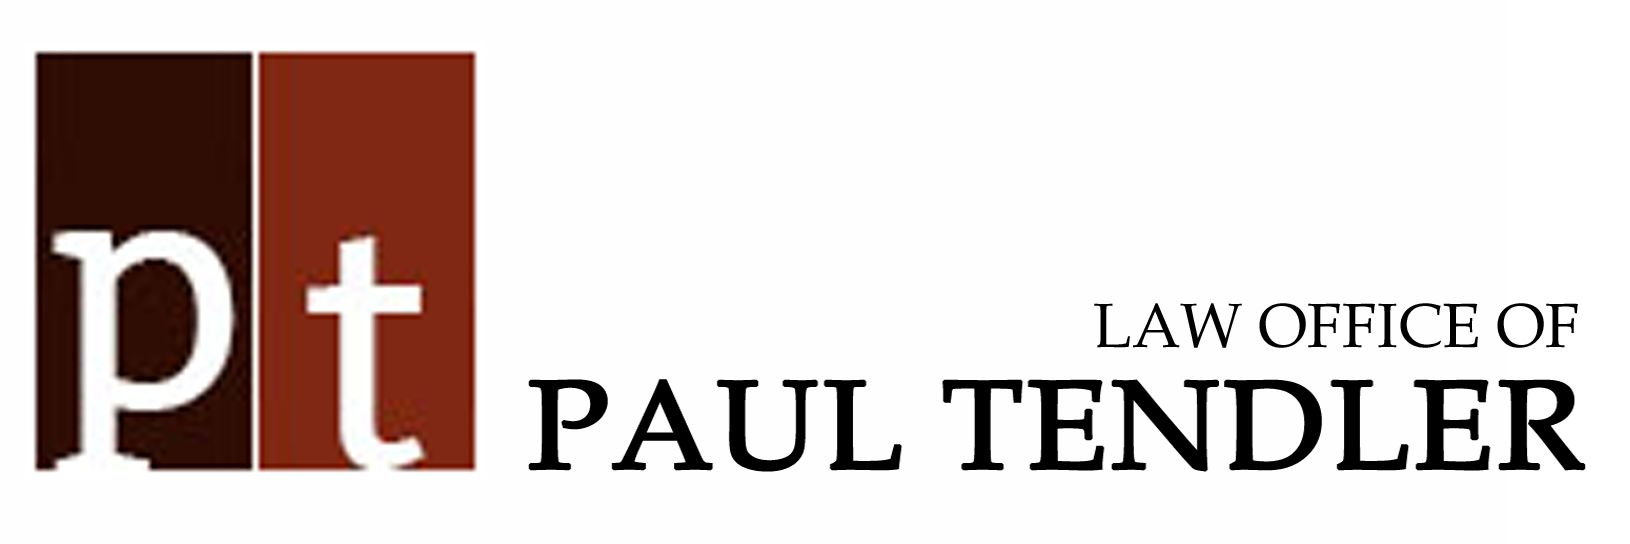 Law Office of Paul Tendler